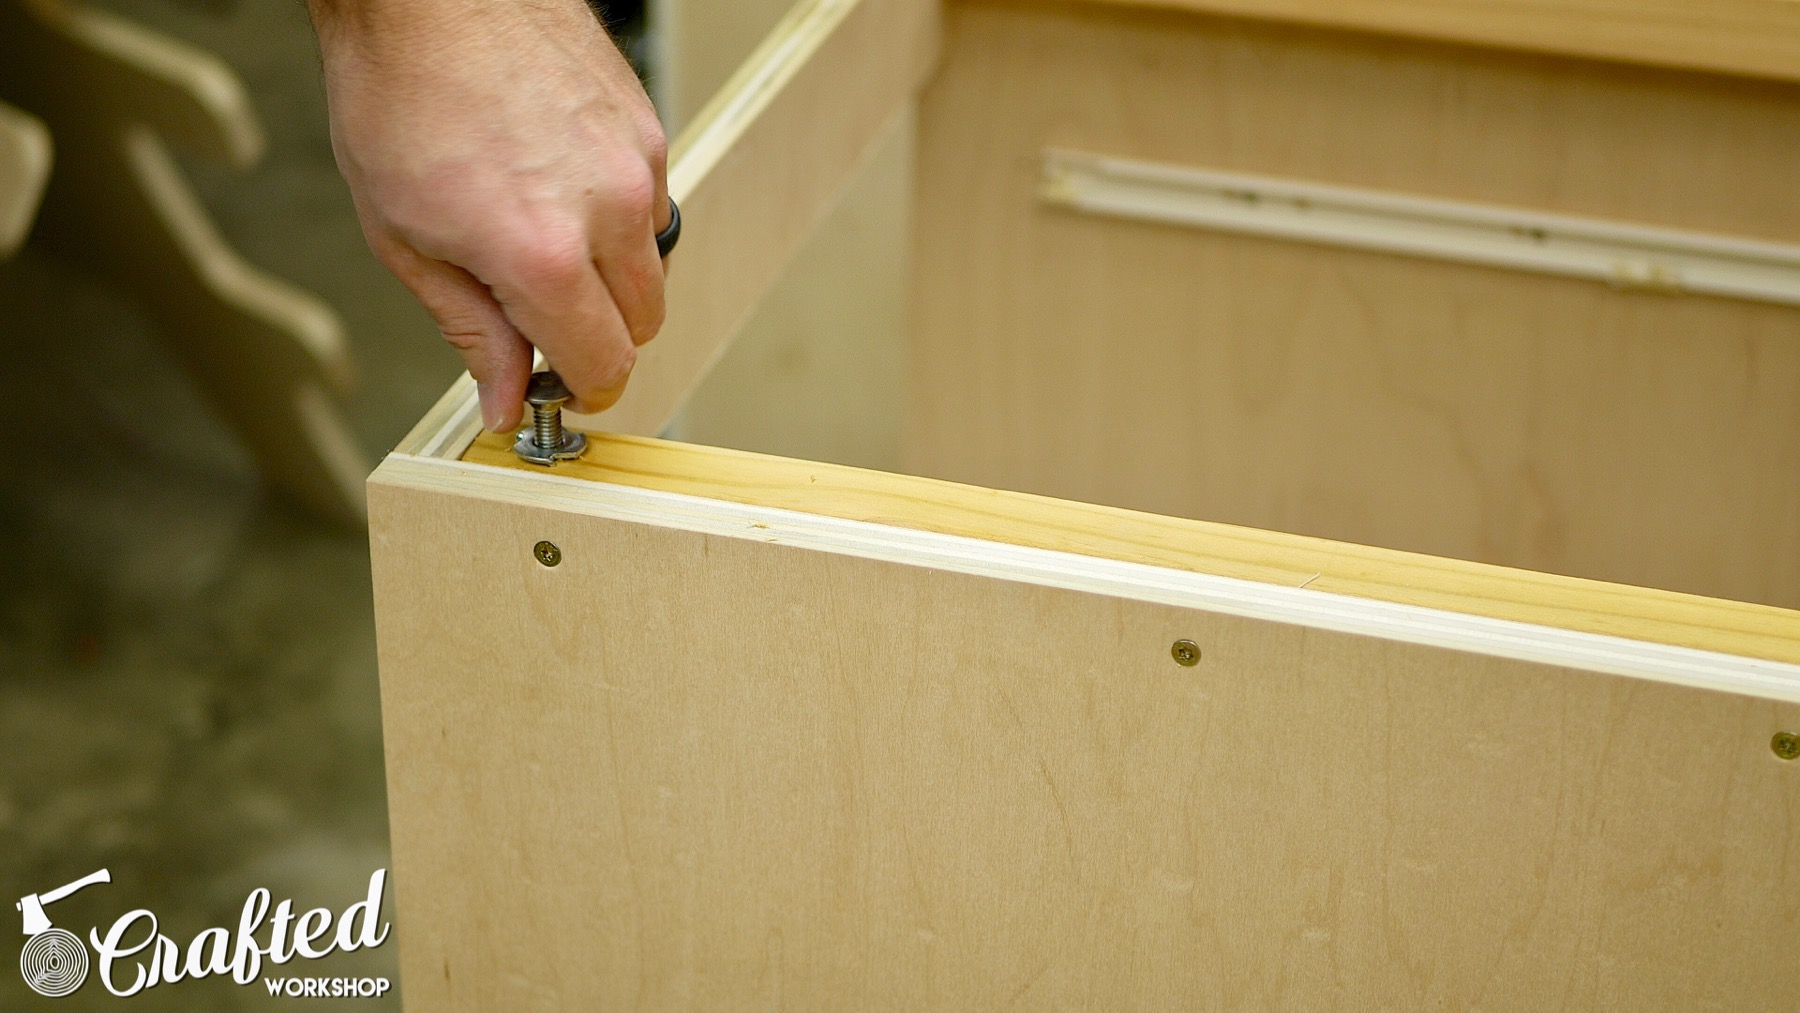 CNC Table Tool Storage Cabinet diy leveling feet